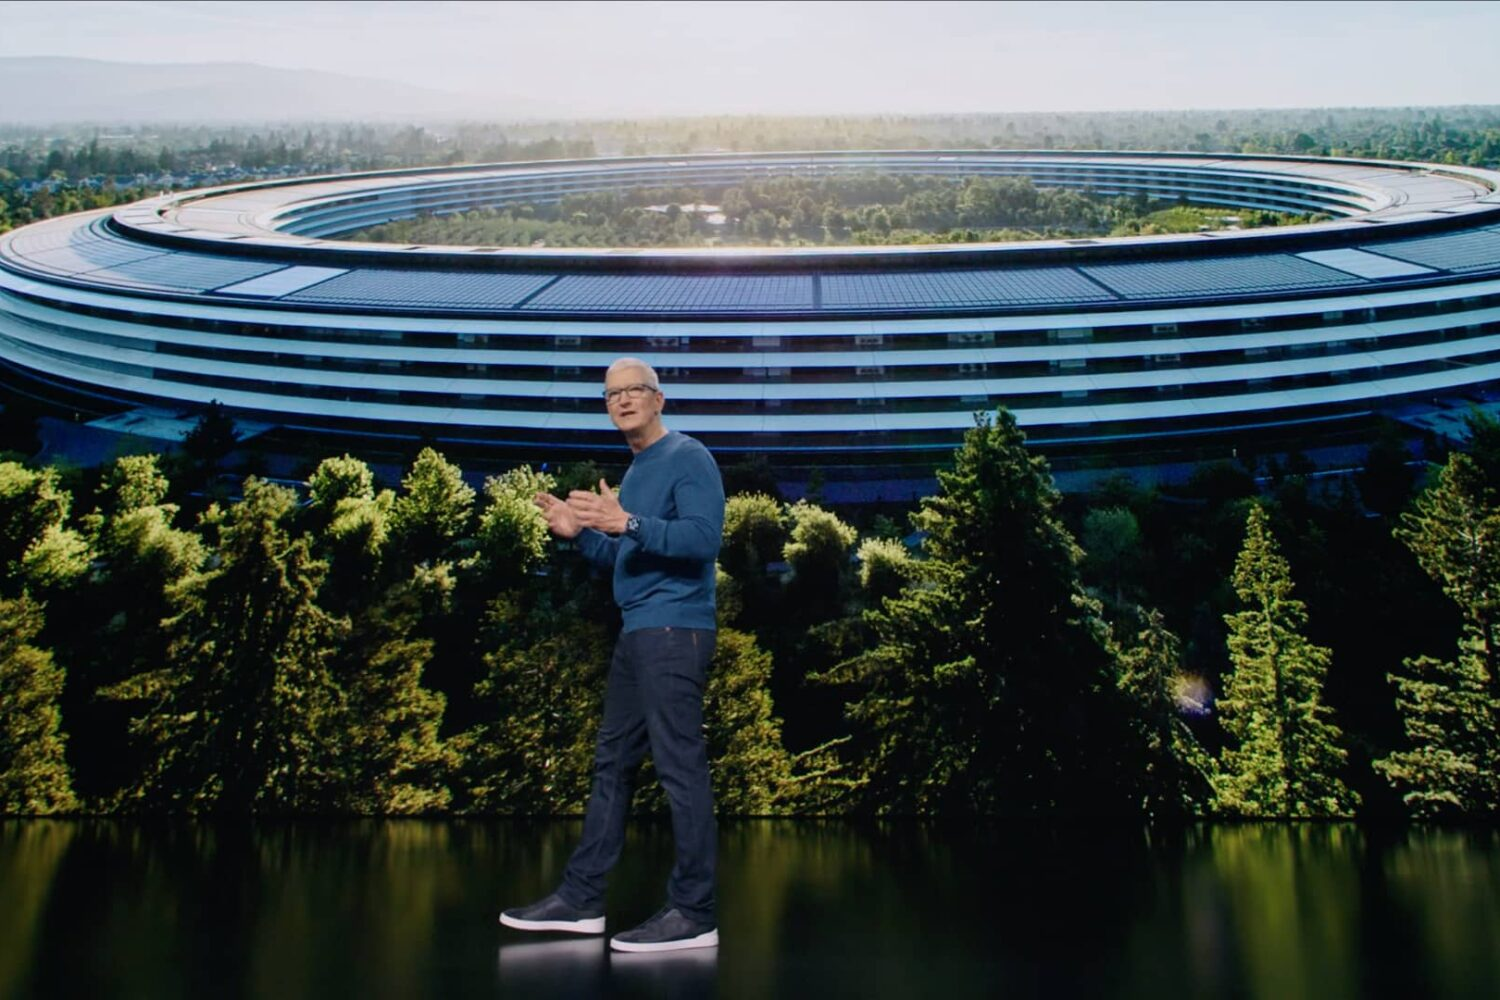 """A still image from Apple's September 2021 """"California Streaming"""" event video with CEO Tim Cook standing on stage in front of a huge keynote slide behind him that displays an aerial view of the Apple Park headquarters while Cook is talking enthusiastically and gesturing with his hands"""